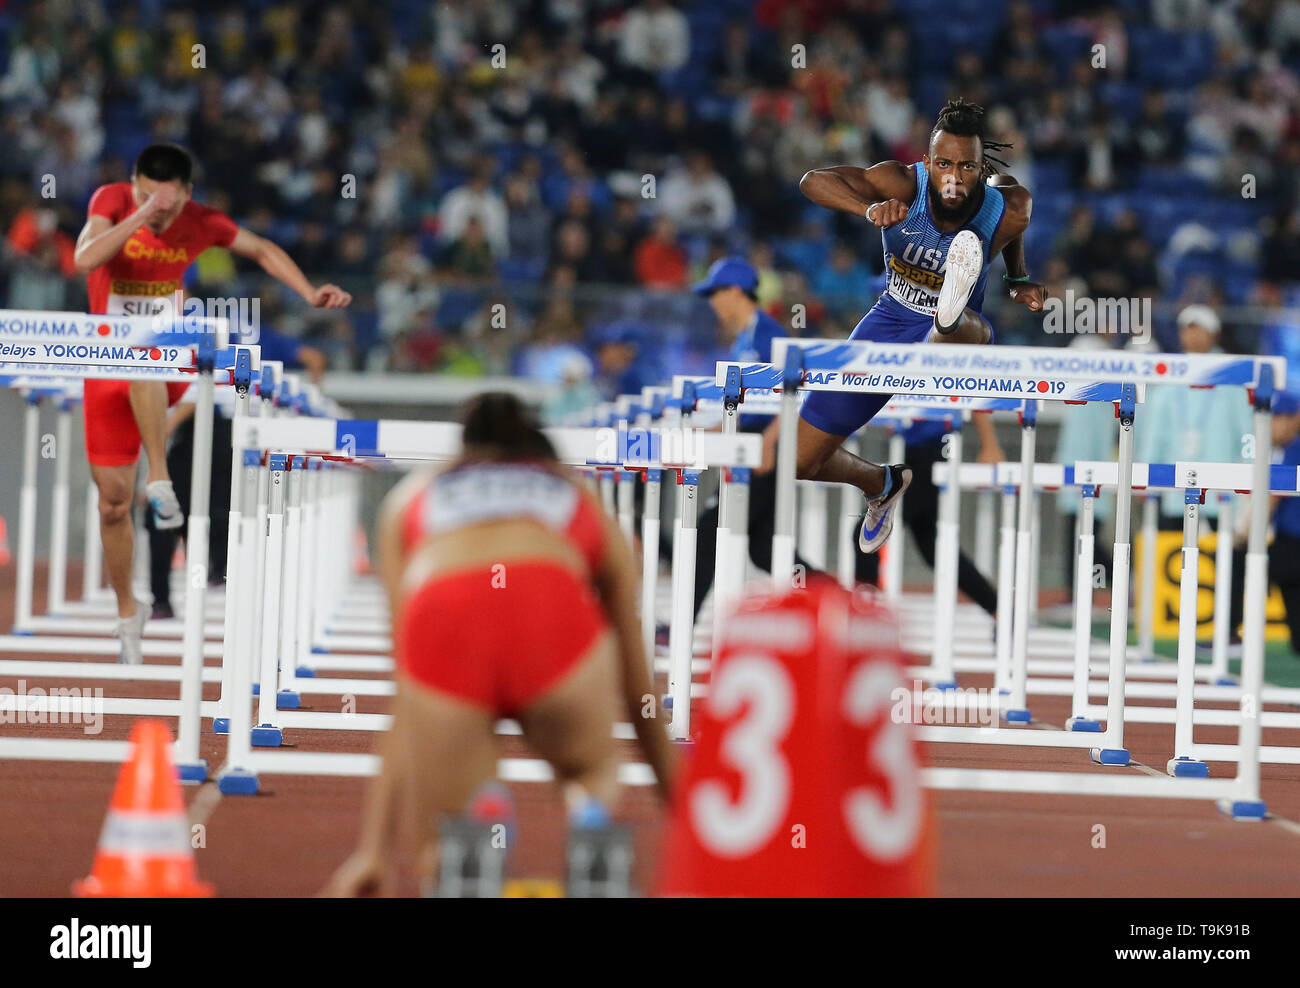 YOKOHAMA, JAPAN - MAY 10:  during Day 1 of the 2019 IAAF World Relay Championships at the Nissan Stadium on Saturday May 11, 2019 in Yokohama, Japan. (Photo by Roger Sedres for the IAAF) - Stock Image